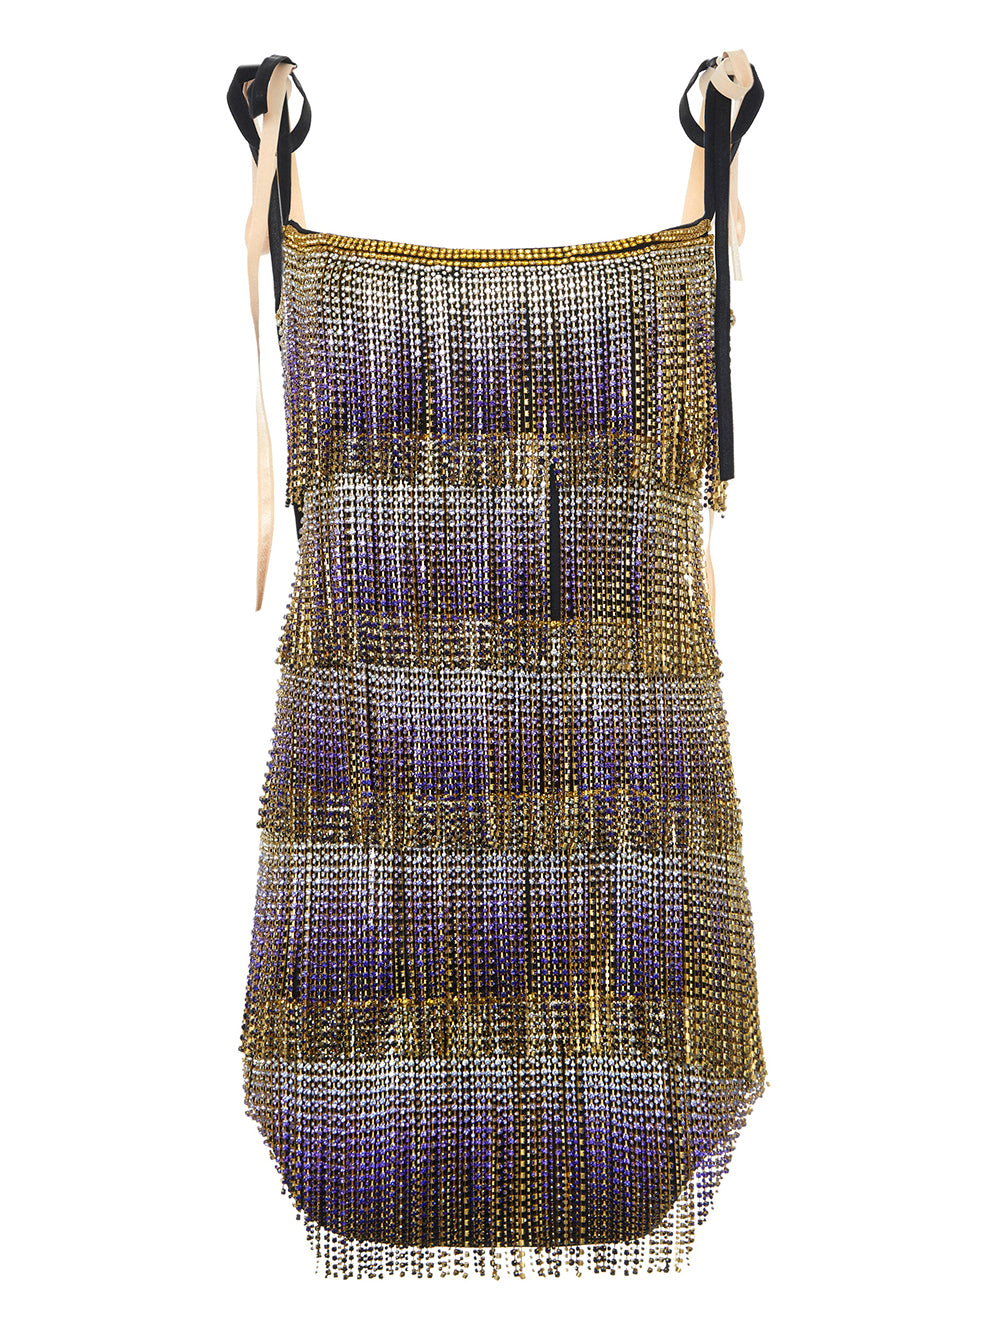 Crystal-Embellished Fringe Mini Dress